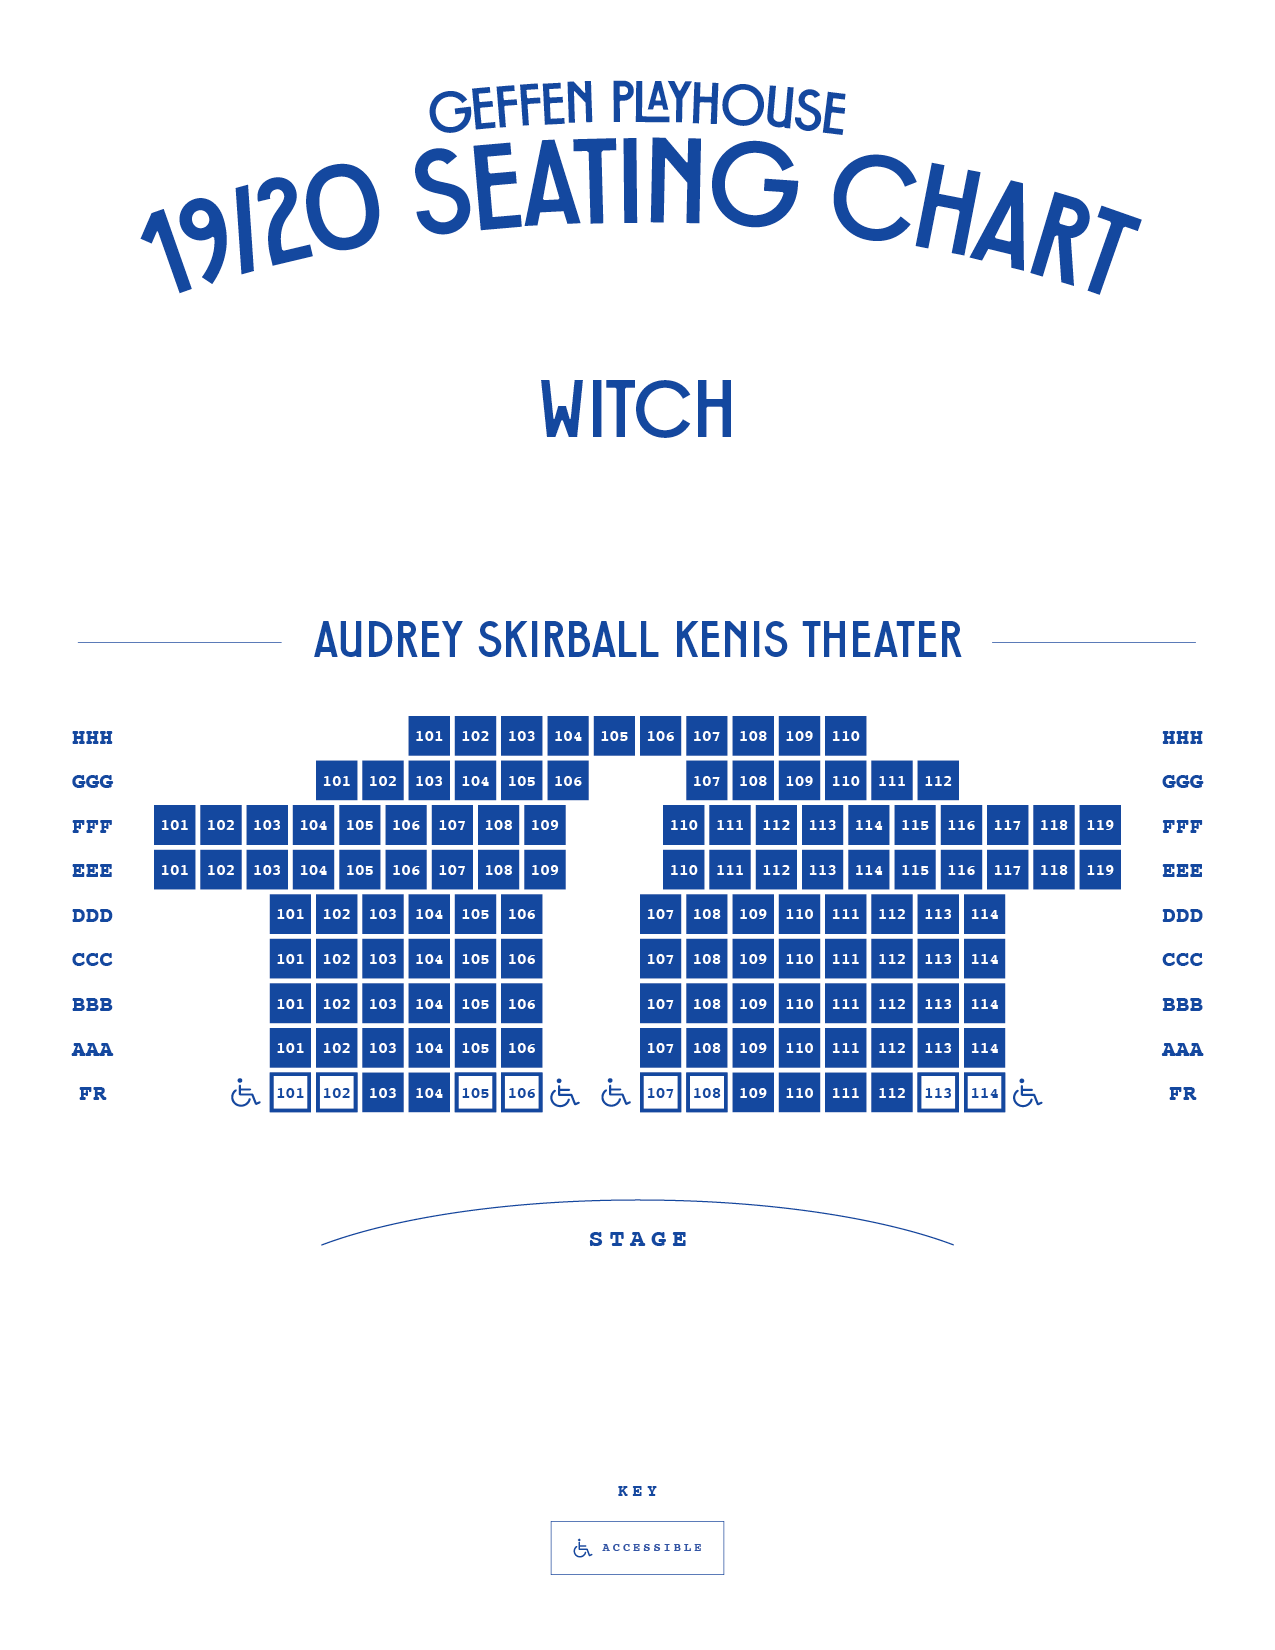 Geffen Playhouse Theater Seating Charts Geffen Playhouse